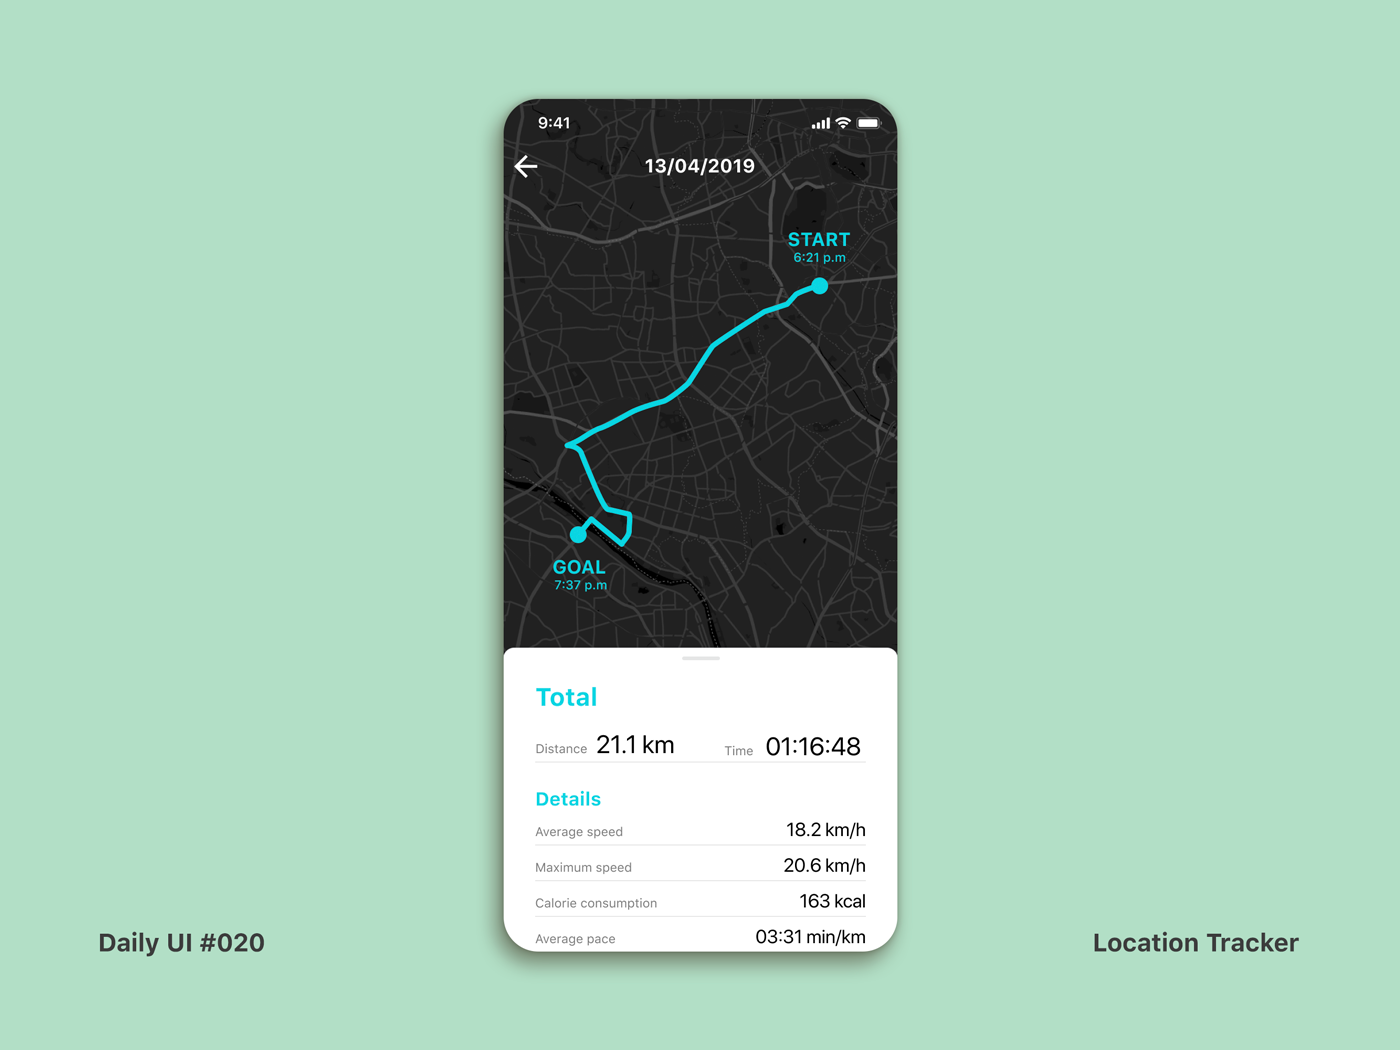 Daily UI #020 Location Tracker cycling location tracker dailyui020 dailui app interface ui dailyui